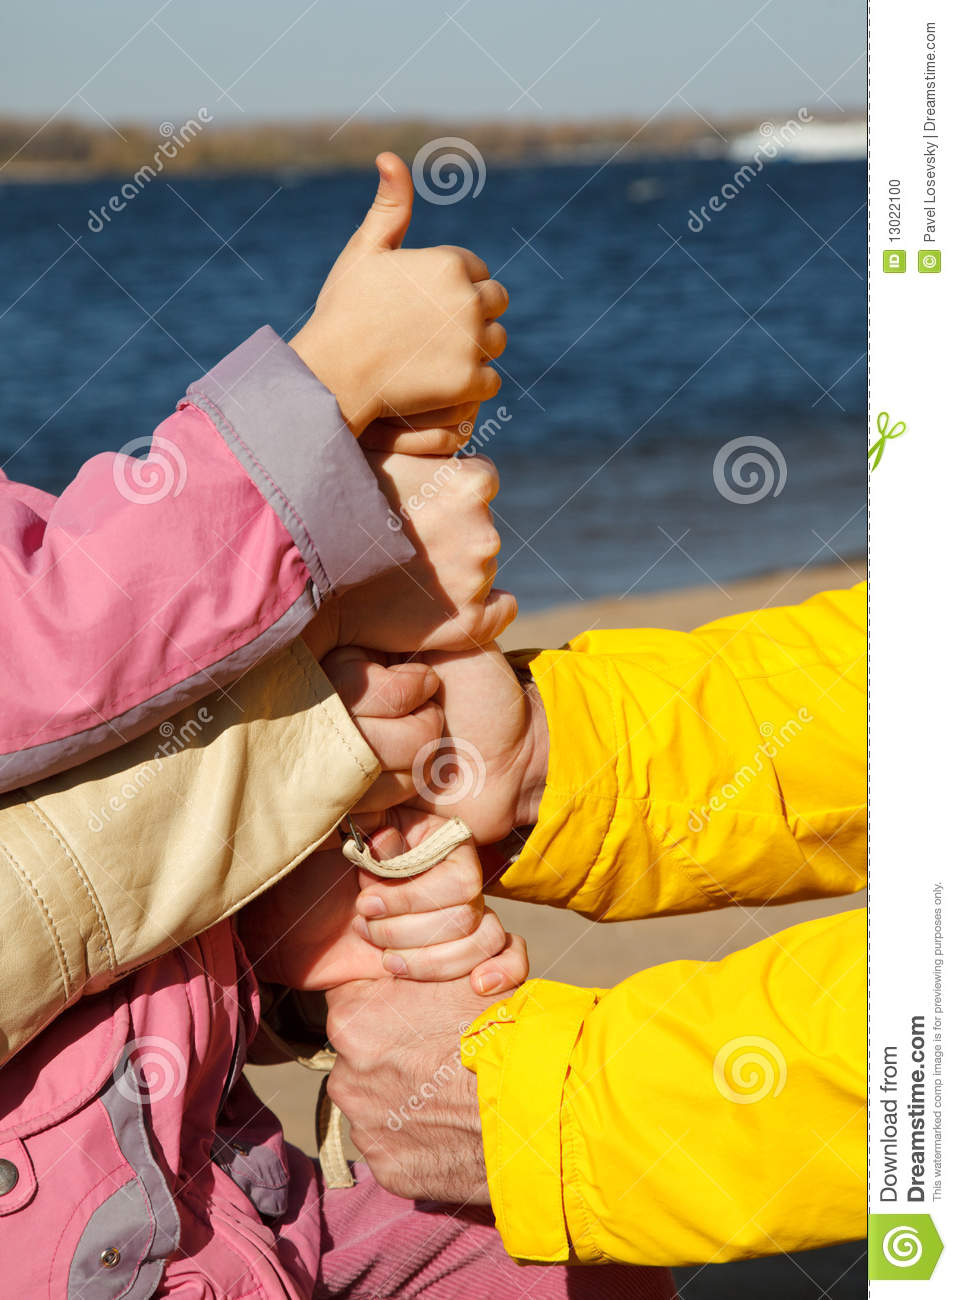 Connected Hands Of Family As Symbol Of Unity Stock Photo 13022100 Megapixl